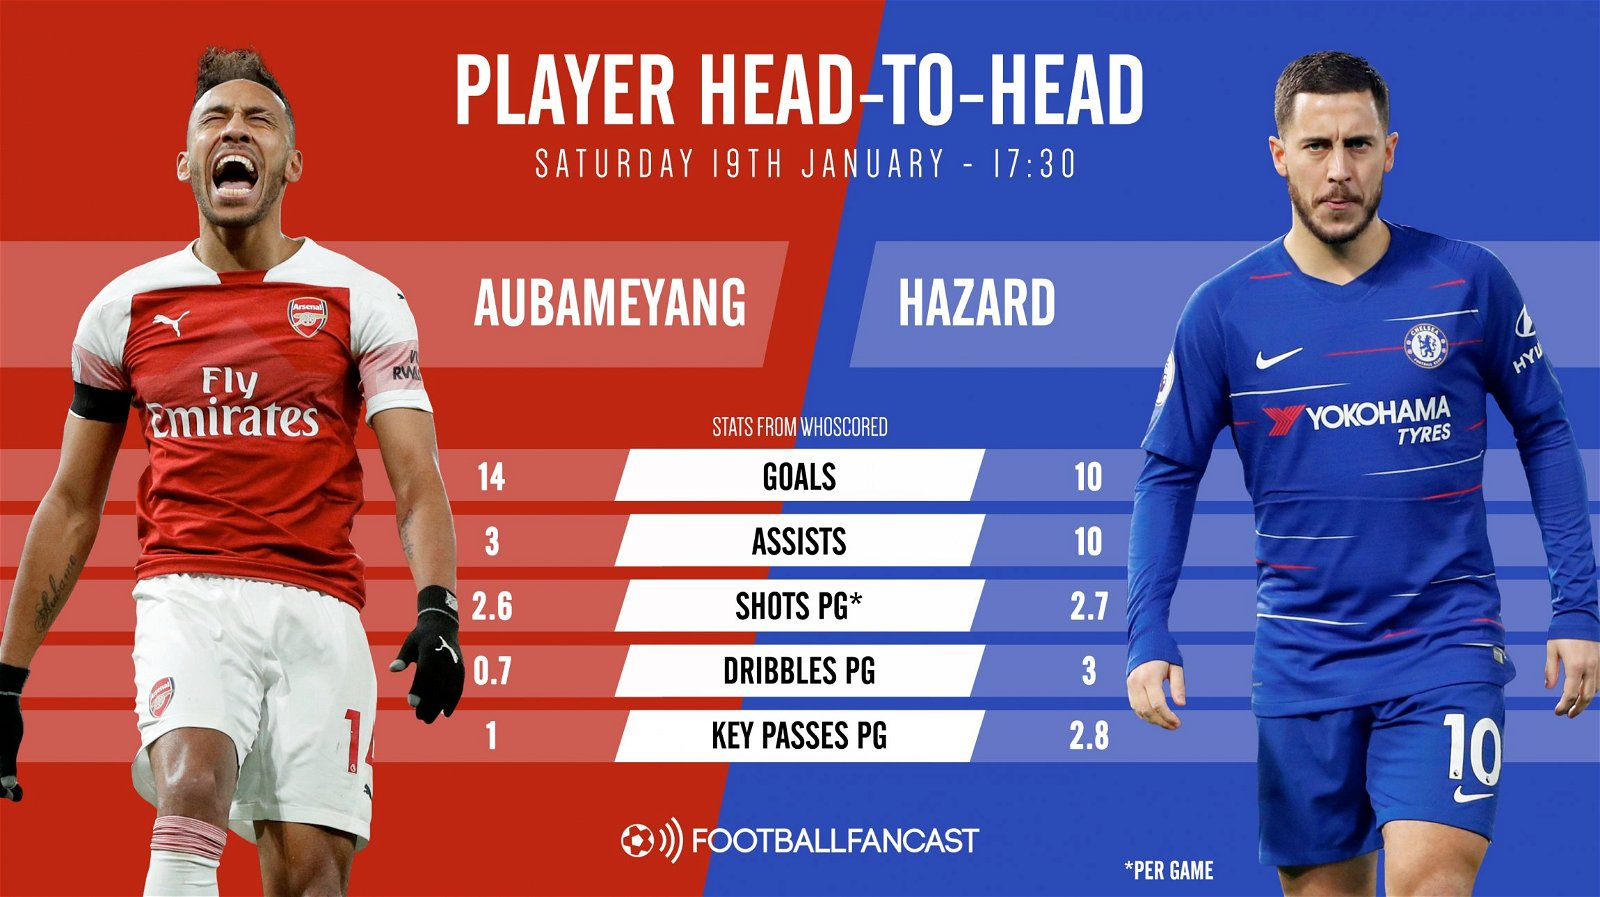 Pierre Emerick Aubameyang and Eden Hazard Arsenal vs Chelsea player head to head graphic - Match Preview: Arsenal vs Chelsea